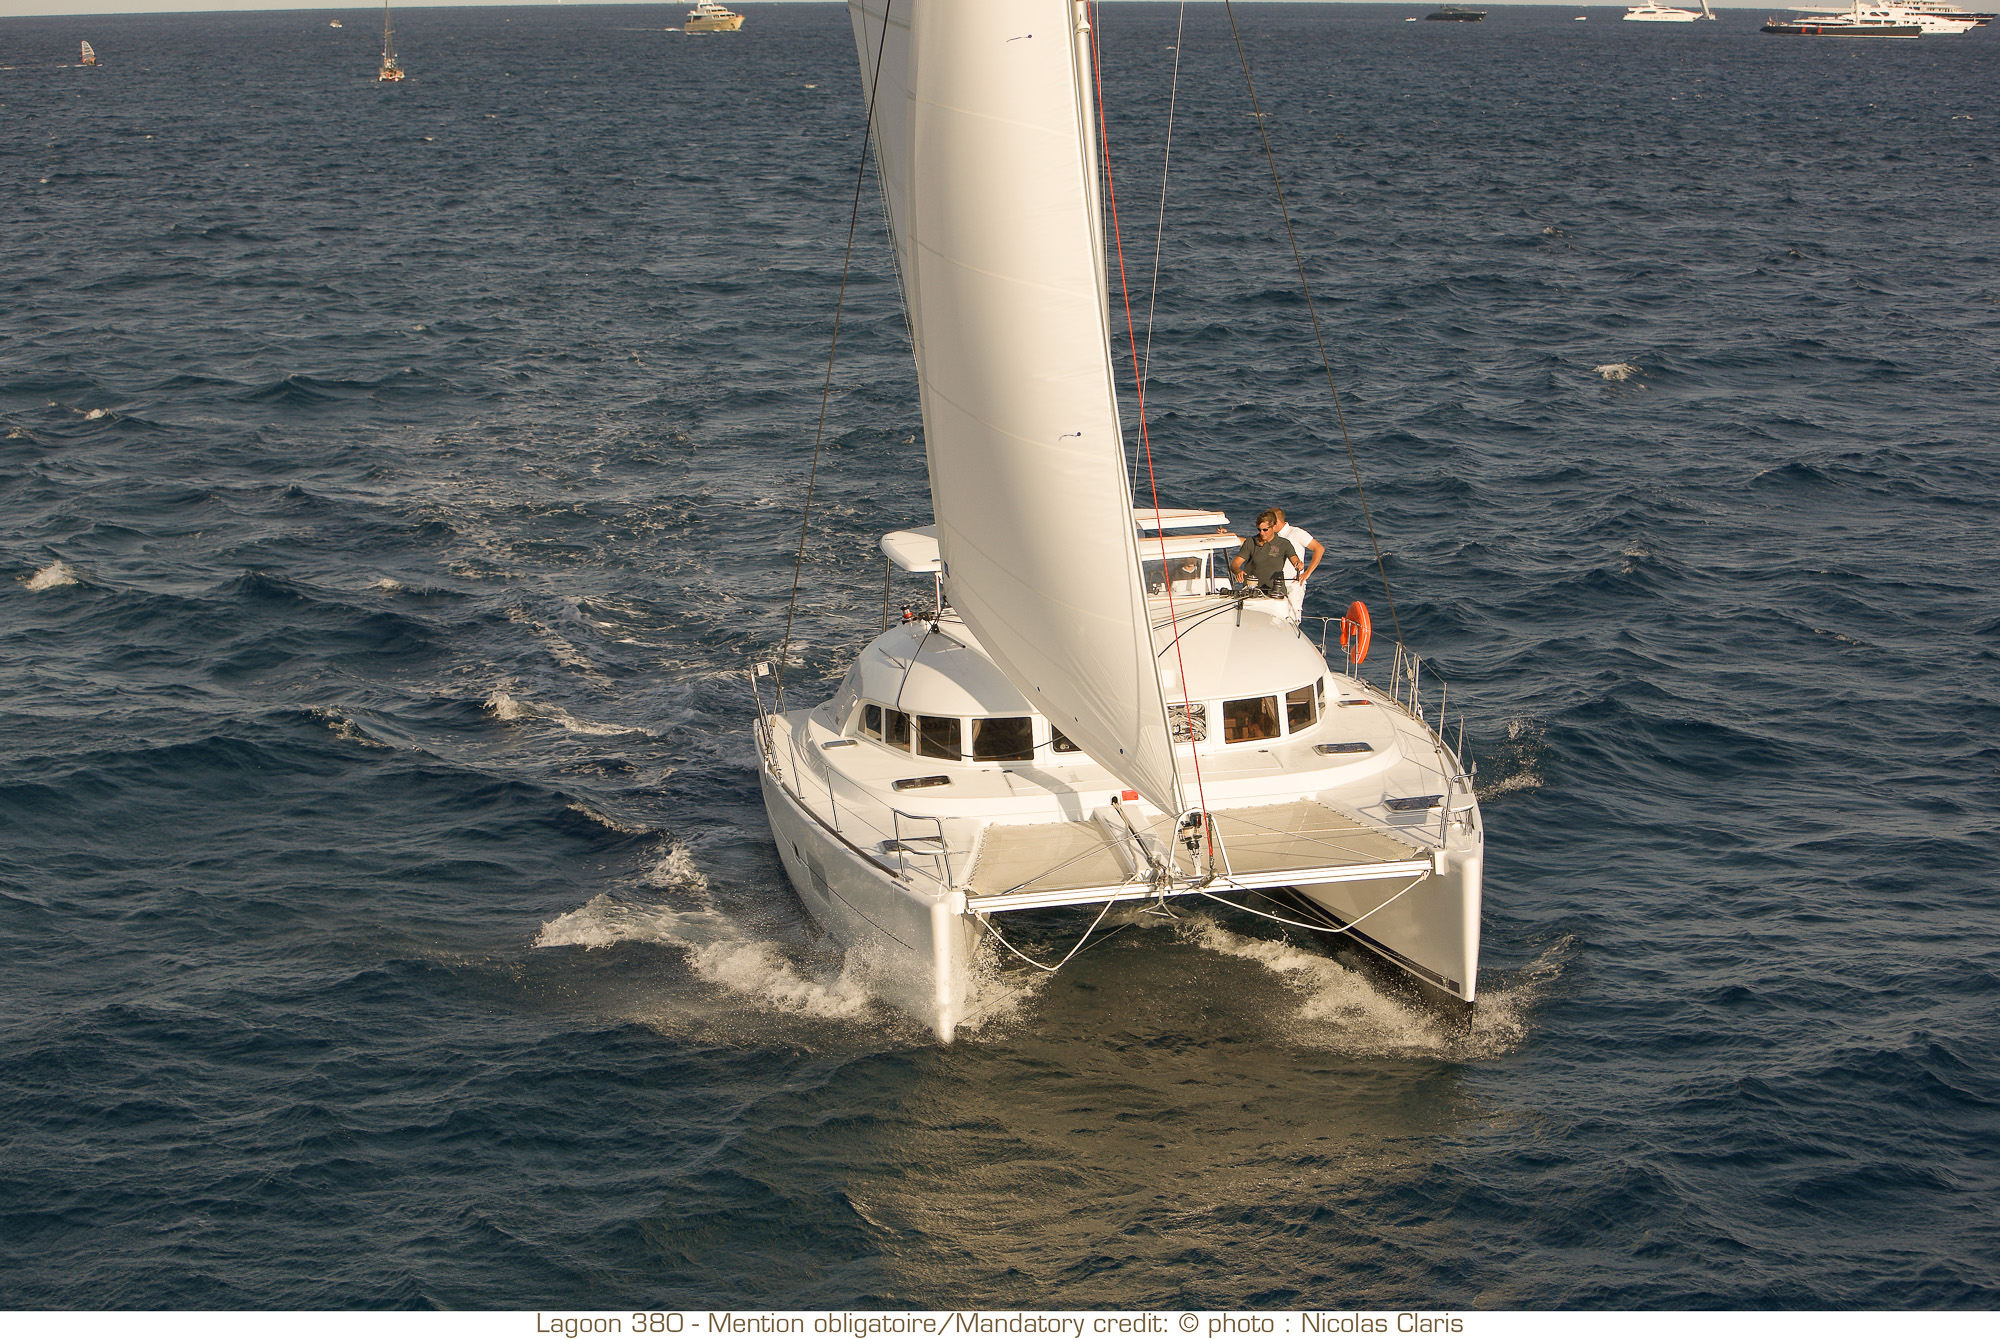 lagoon 380 bareboat catamaran charters available with captain, chef, or provisioning